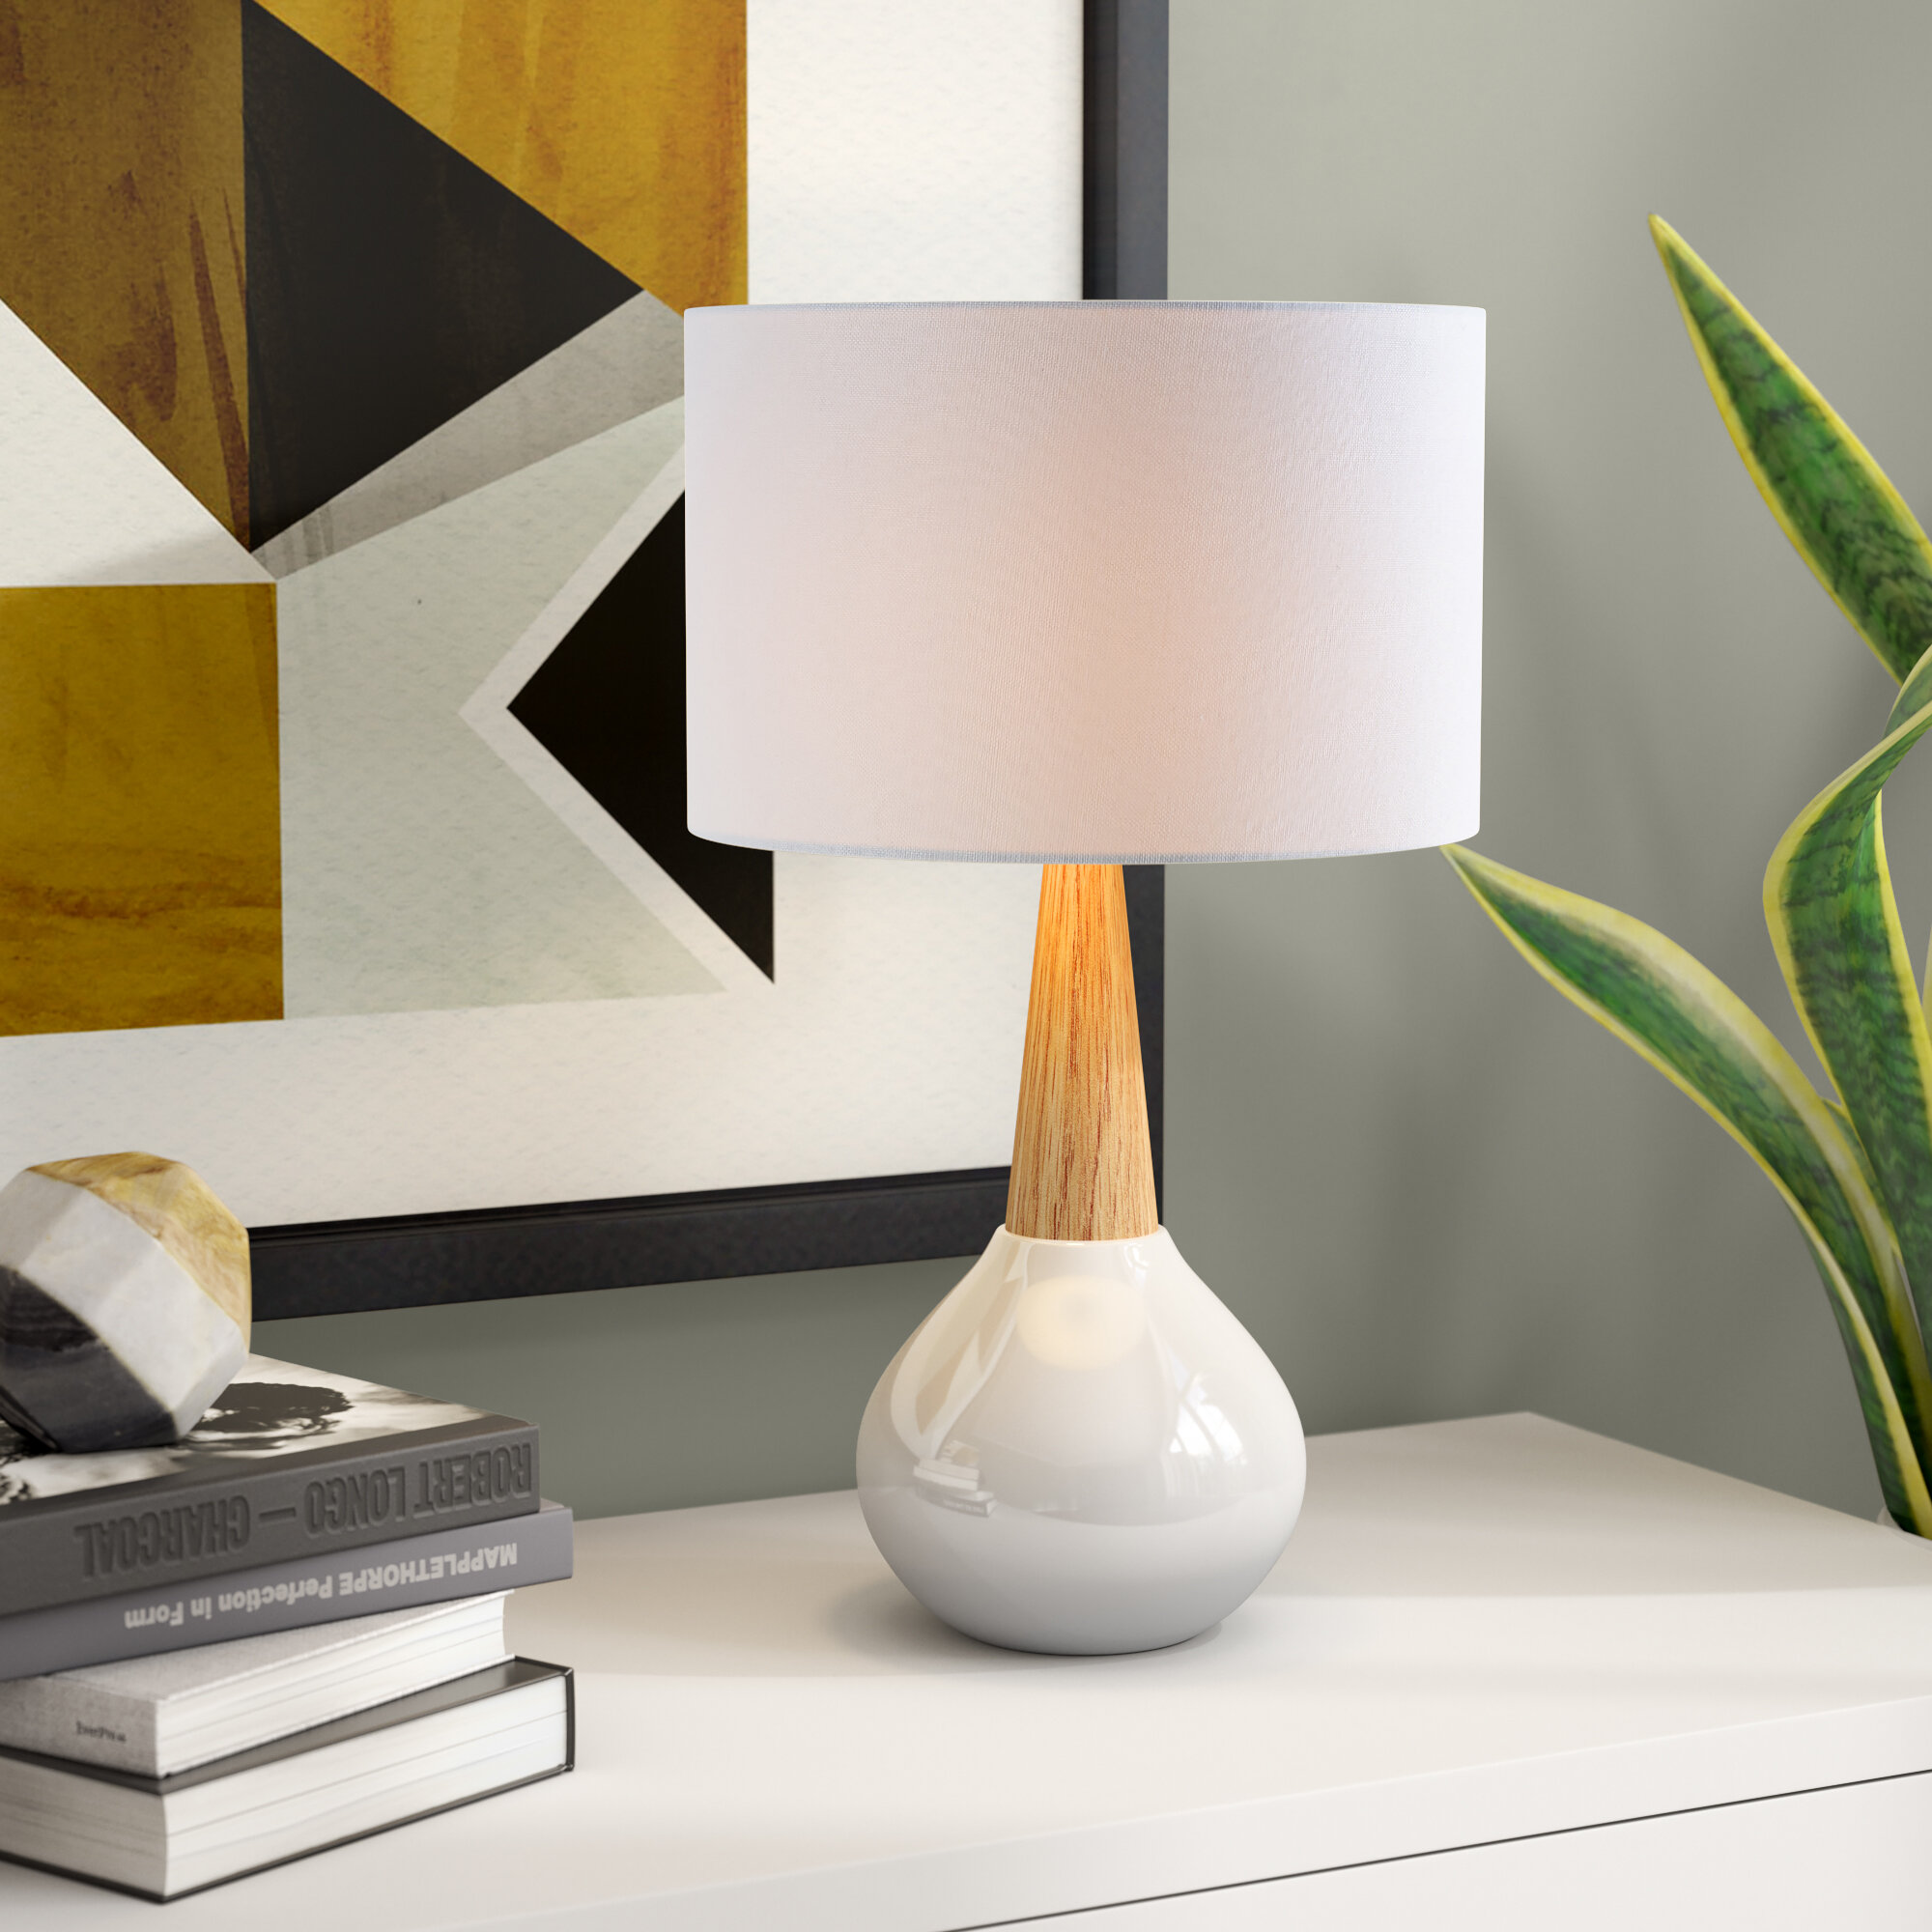 Image of: Mid Century Modern Table Lamps You Ll Love In 2020 Wayfair